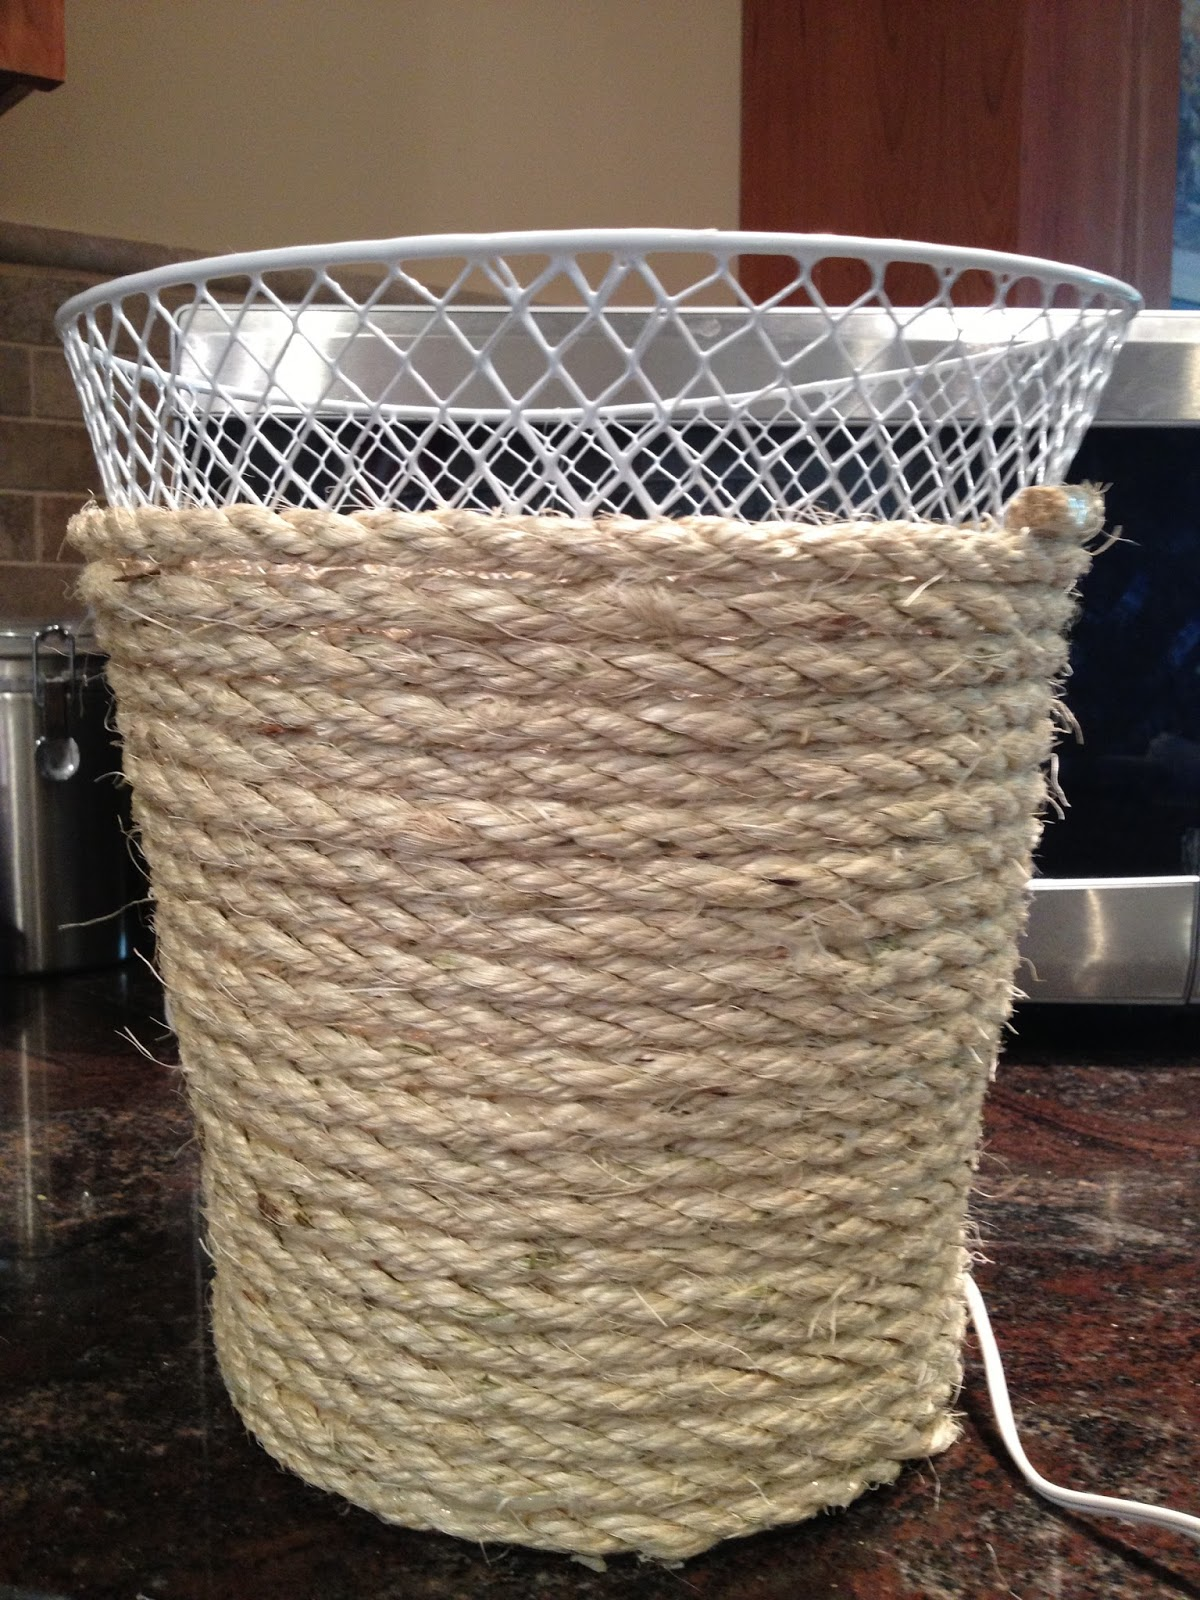 Pottery barn trash can - Dollar Store Trash Can Makeover